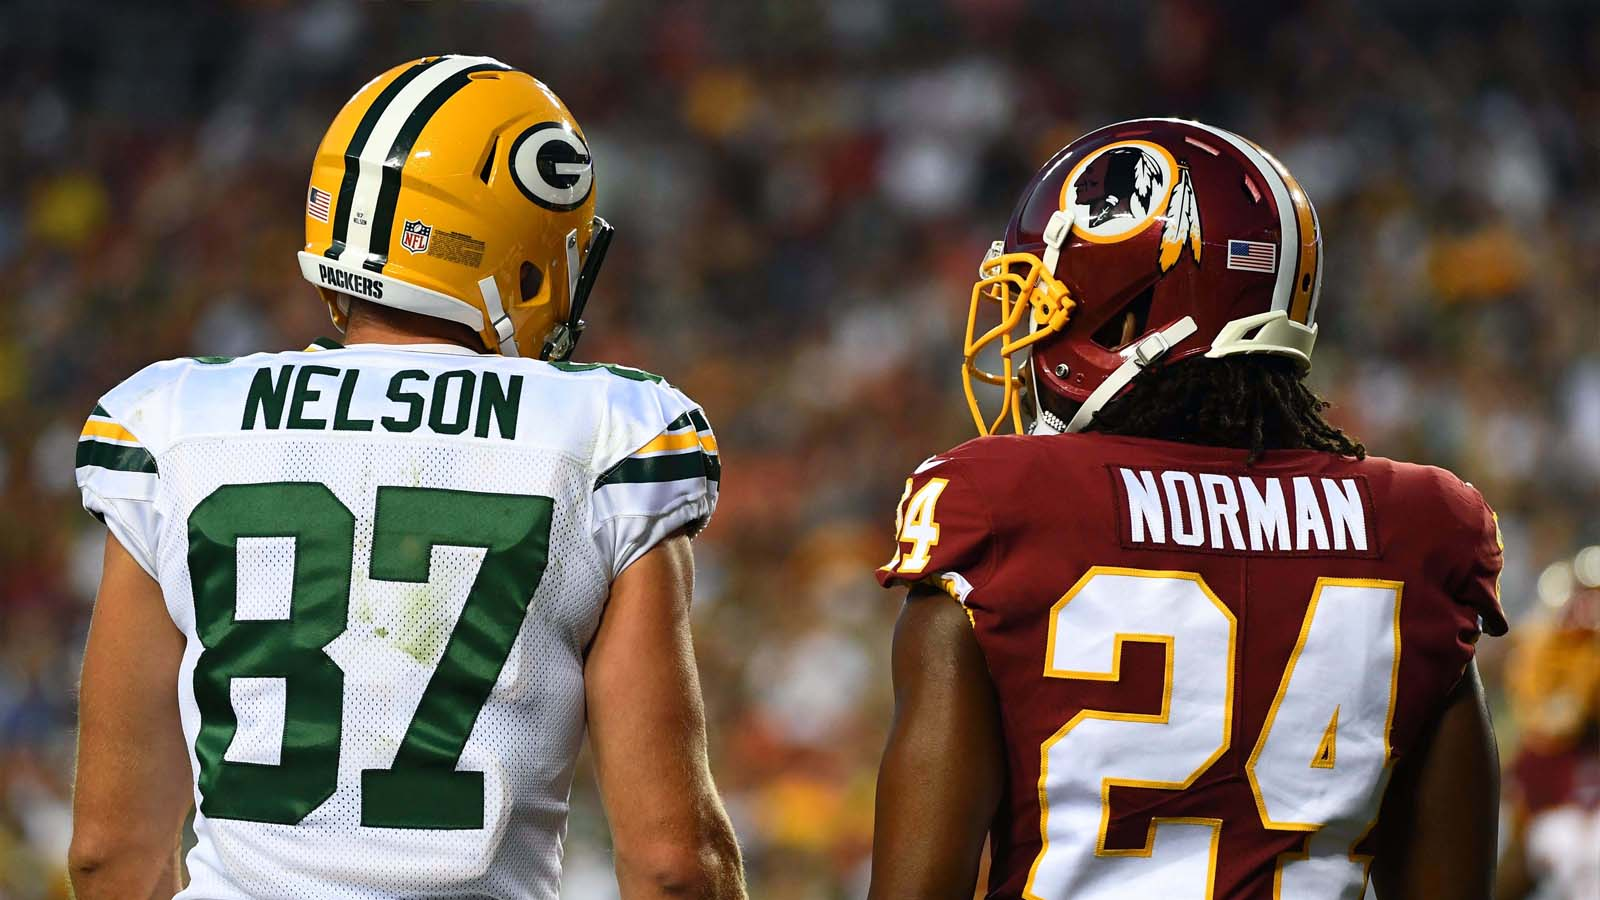 Green Bay Packers wide receiver Jordy Nelson talks with Washington Redskins cornerback Josh Norman during the first half at FedEx Field in Landover, Md., Saturday, Aug. 19, 2017.